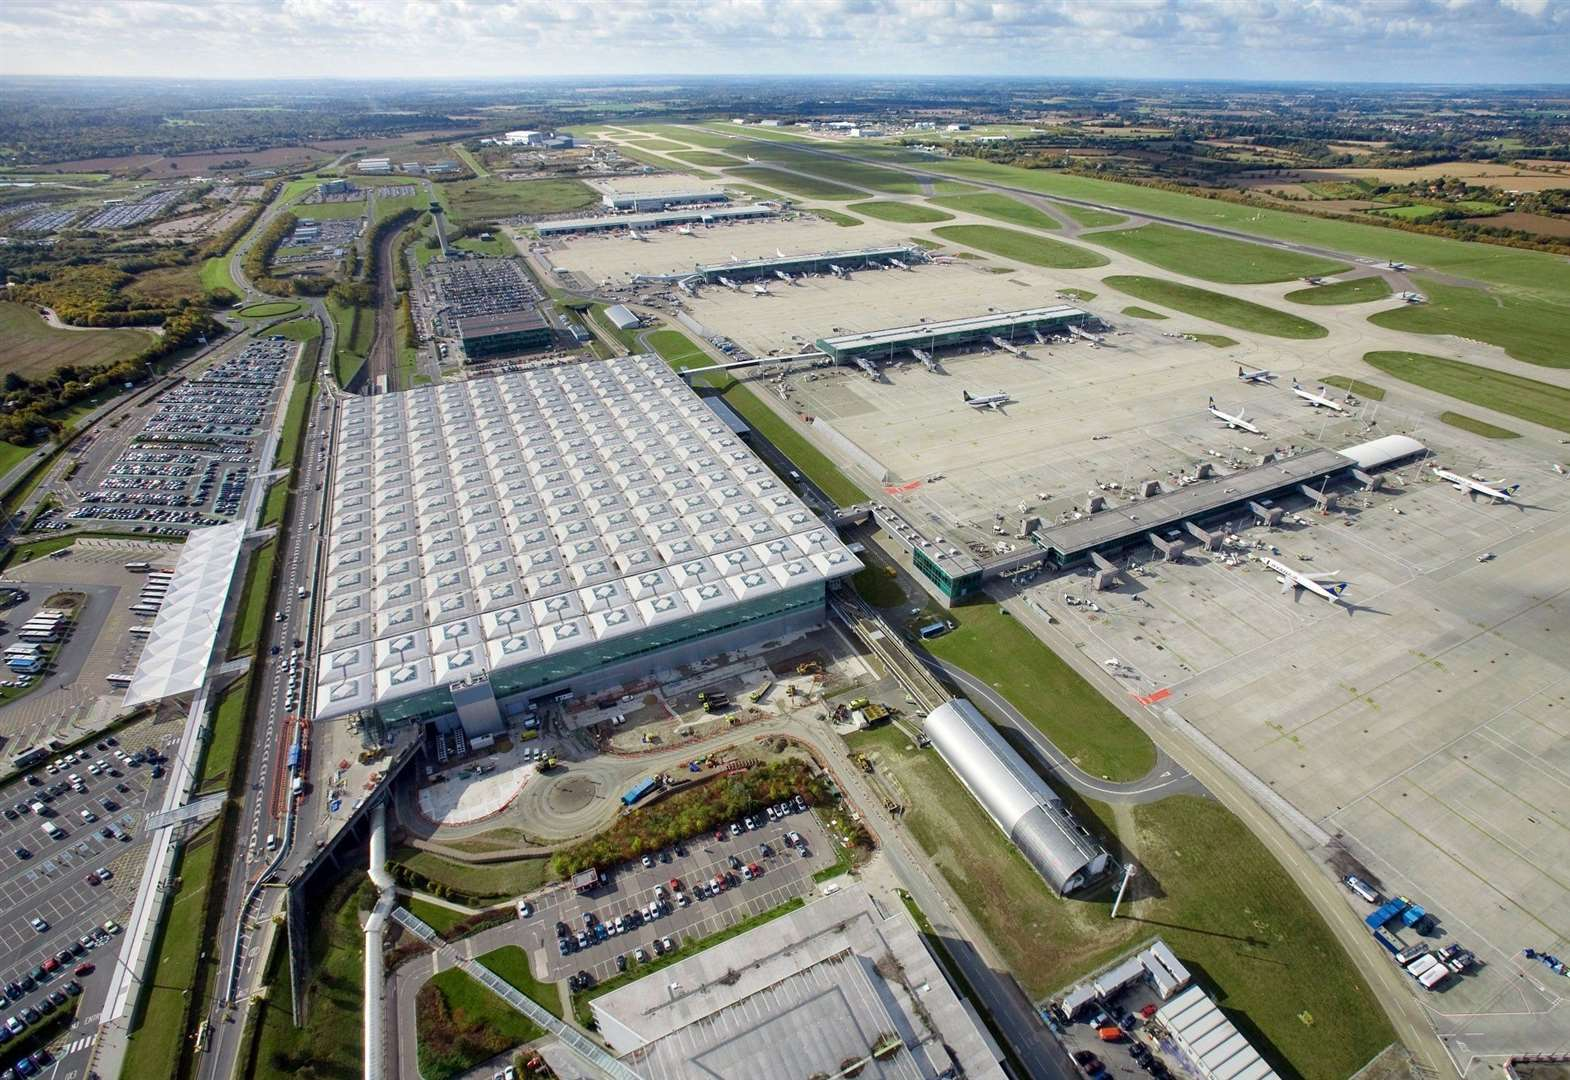 Opposition parties slam council's secrecy over Stansted Airport legal bills